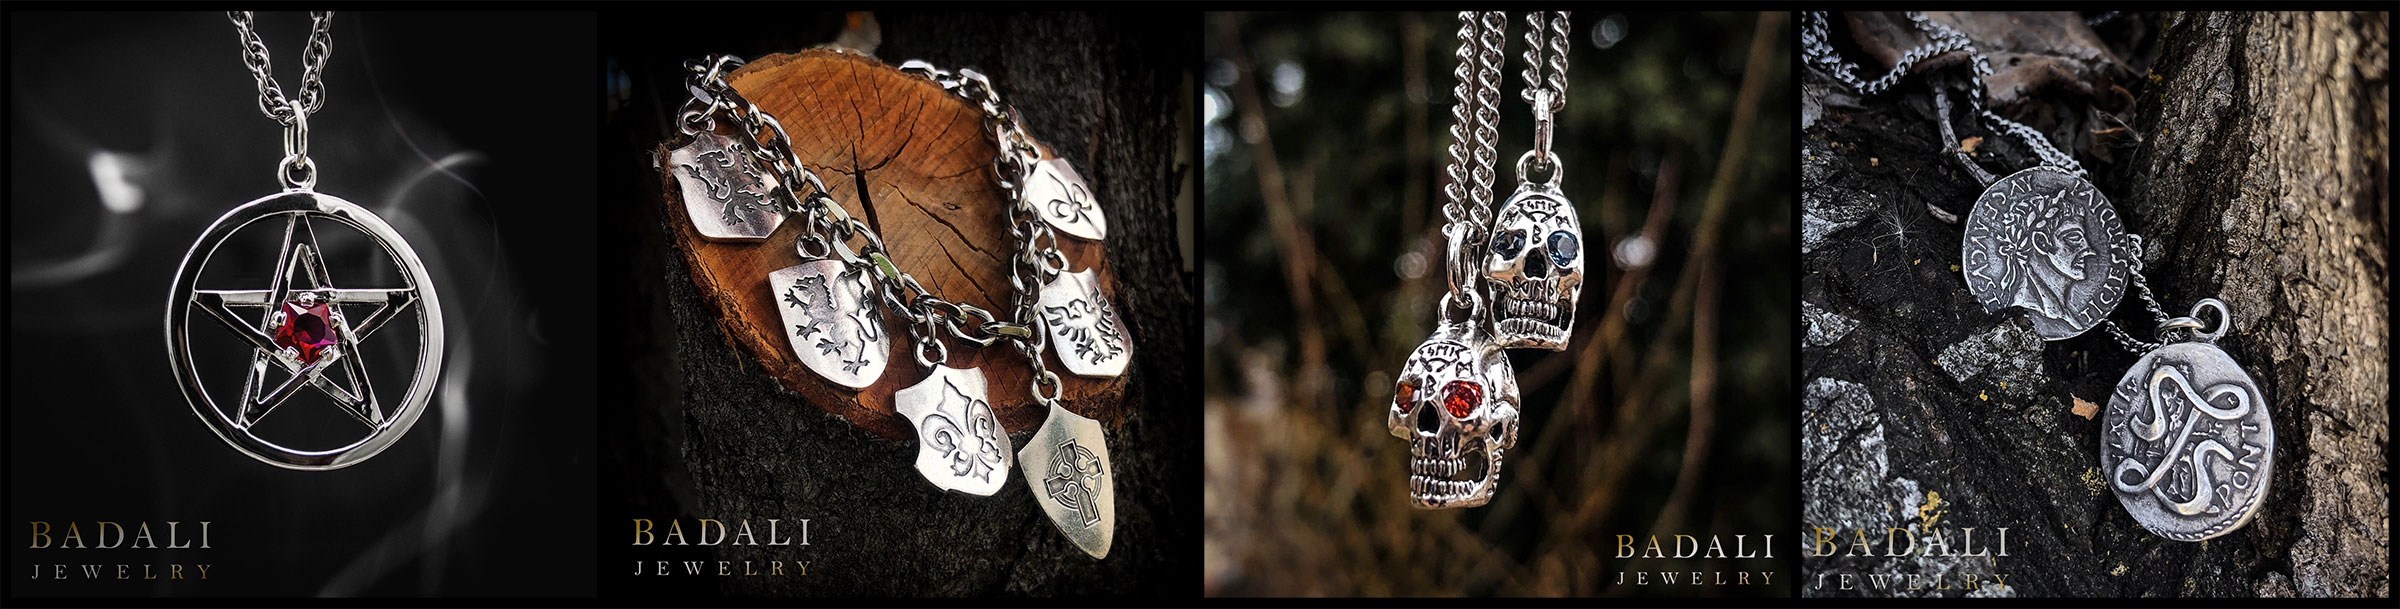 Badali Jewelry Dresden Files Line, including Harry's Pentacle and Shield Bracelet, a Bob necklace, and Lasciel's coin